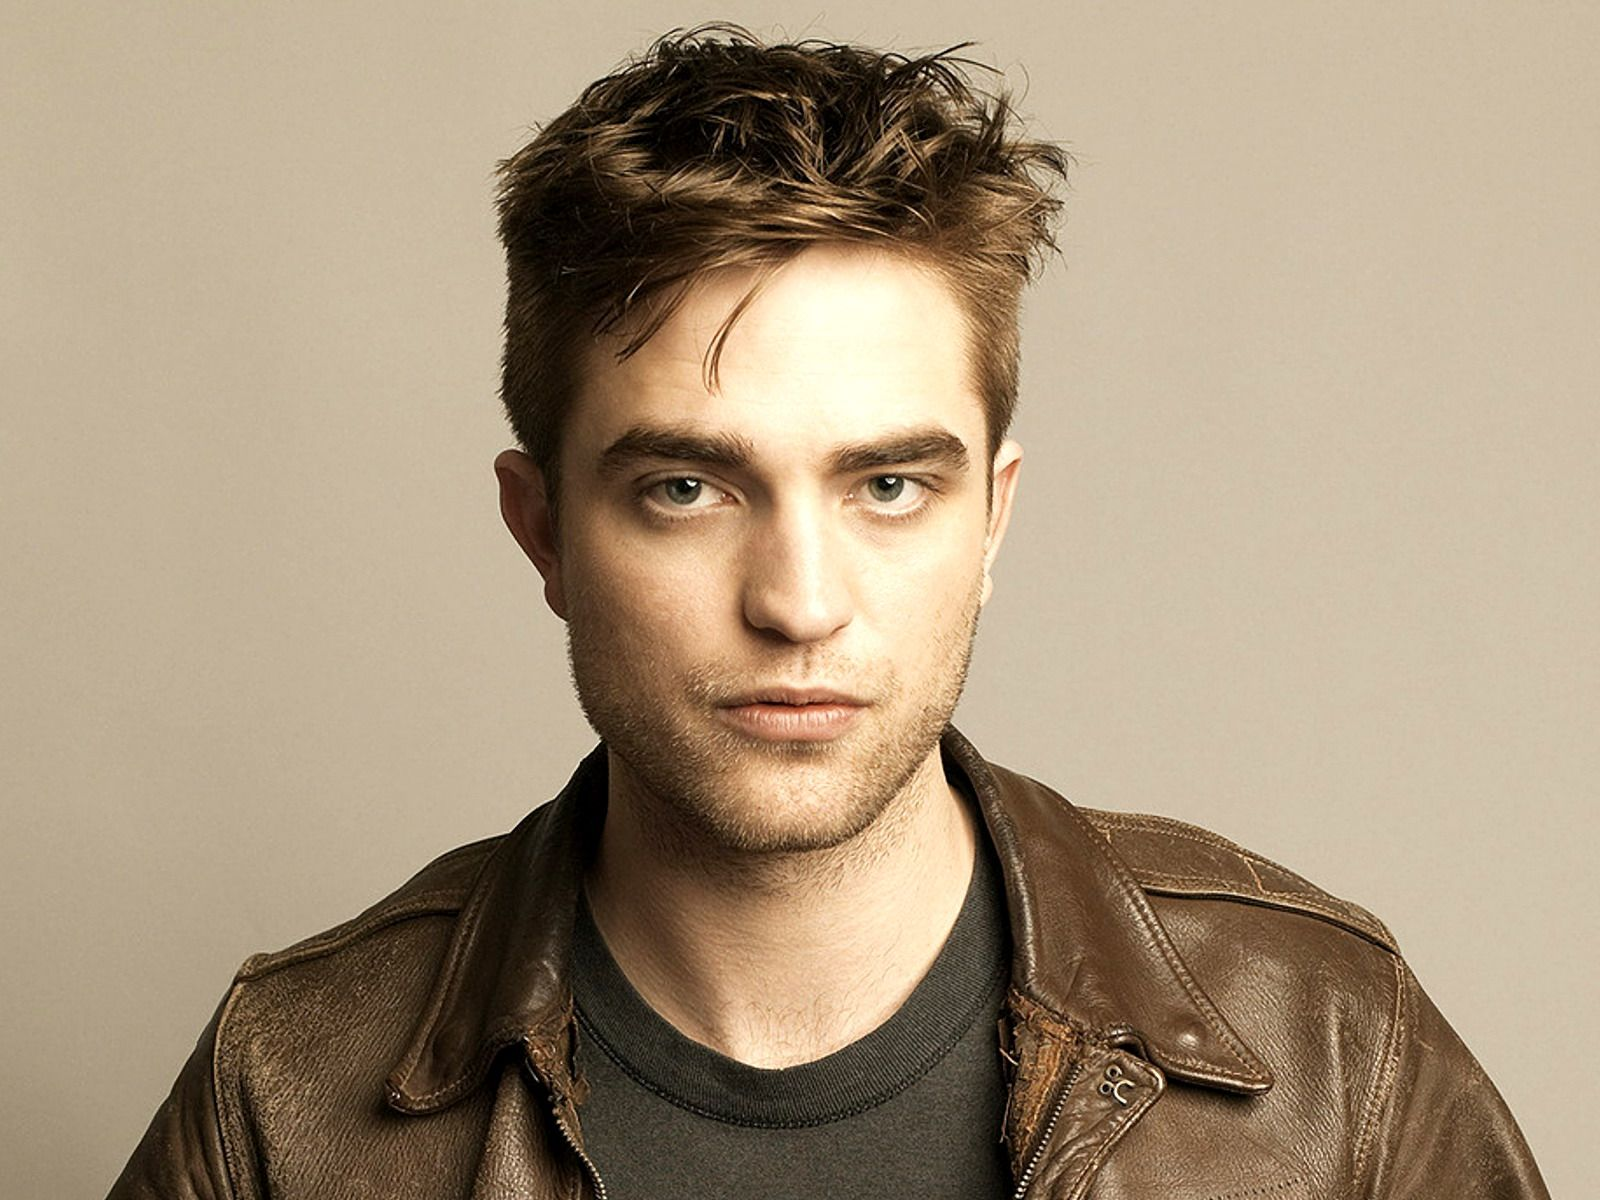 Best Stylish And Trendy Boys Hairstyles 2012 Looking For Haircuts